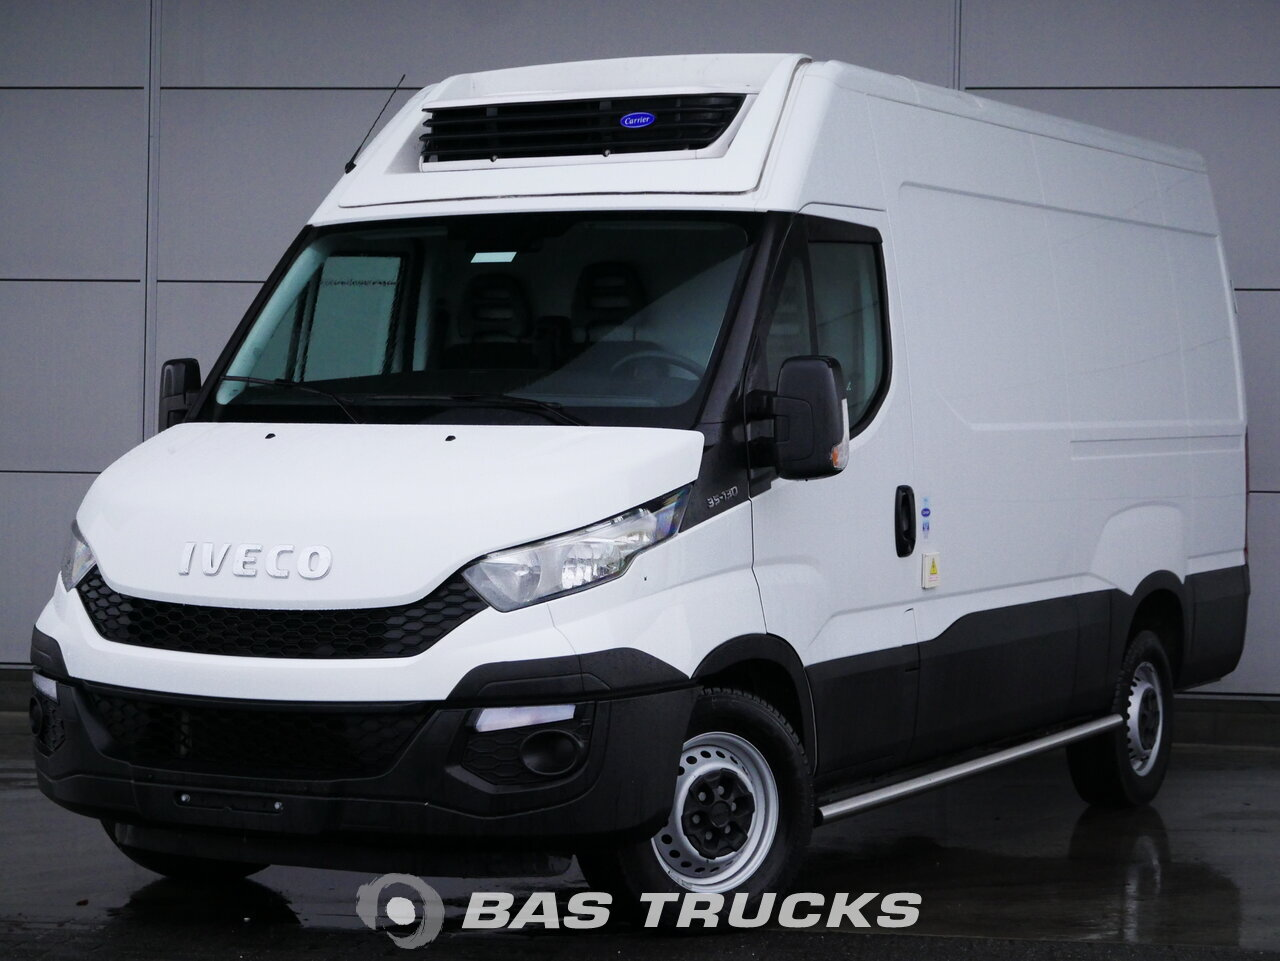 bf7ad5d226 IVECO Daily Light commercial vehicle Euro norm 5 €29900 - BAS Trucks